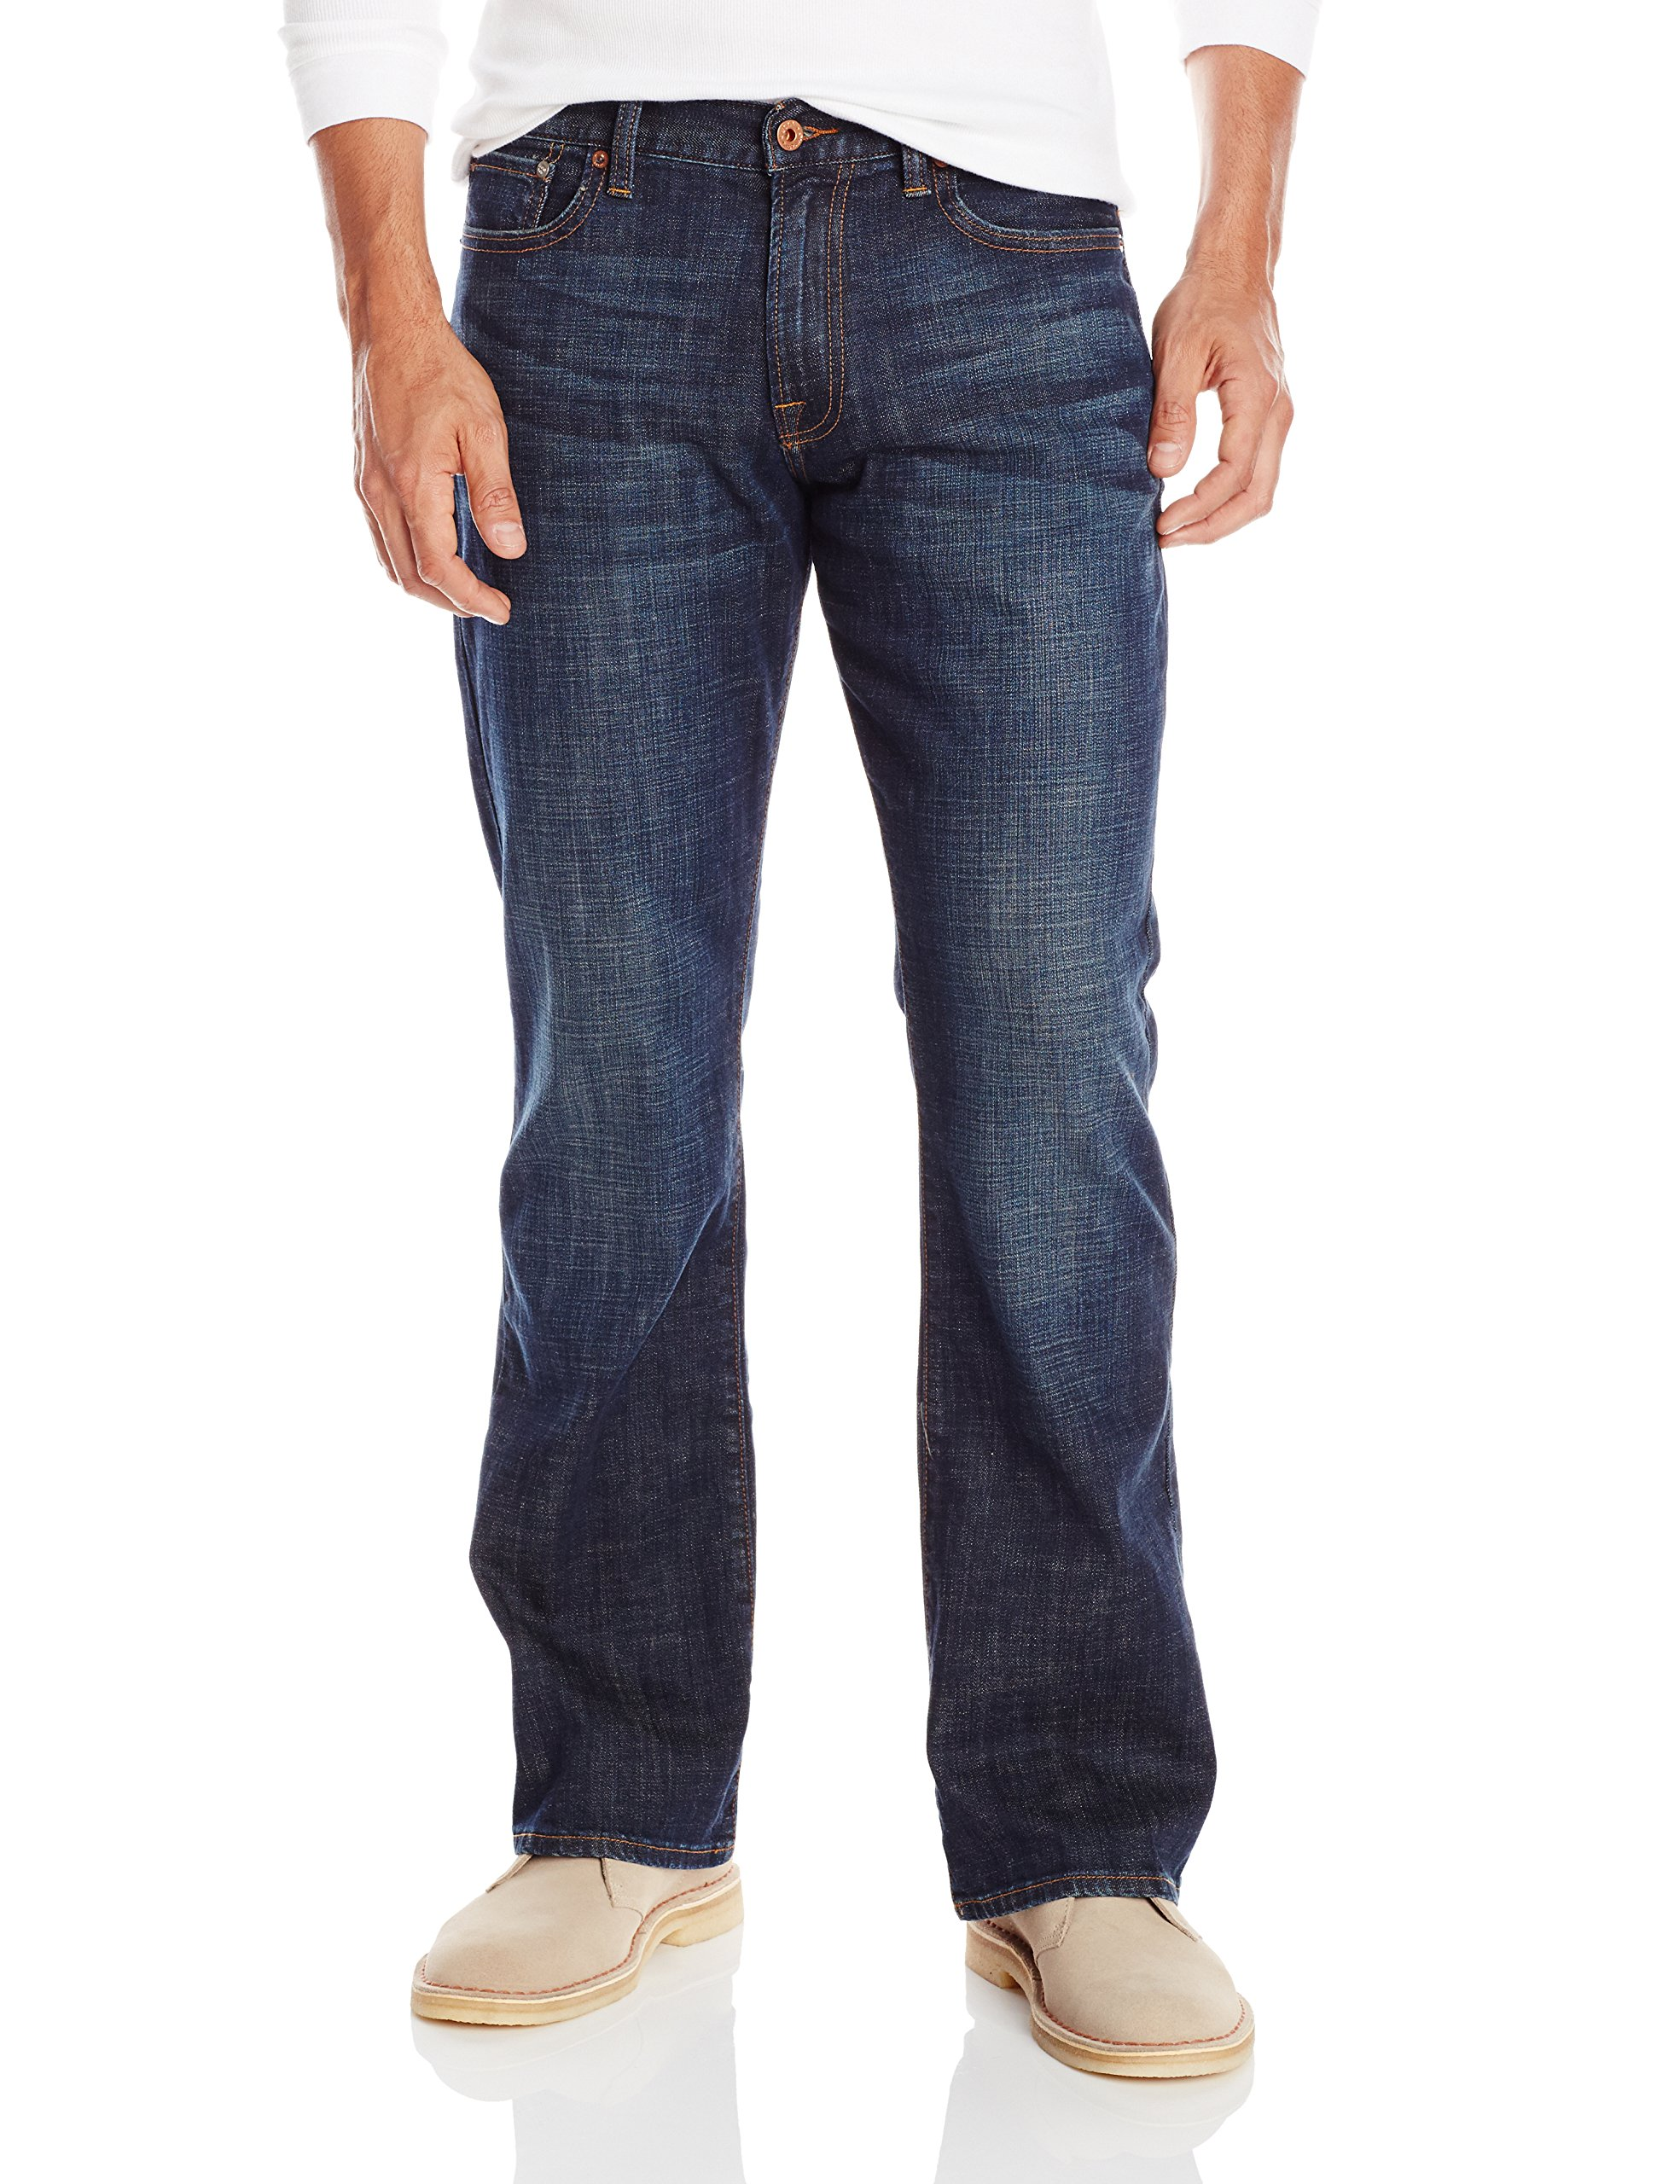 lucky brand jeans fit guide mens